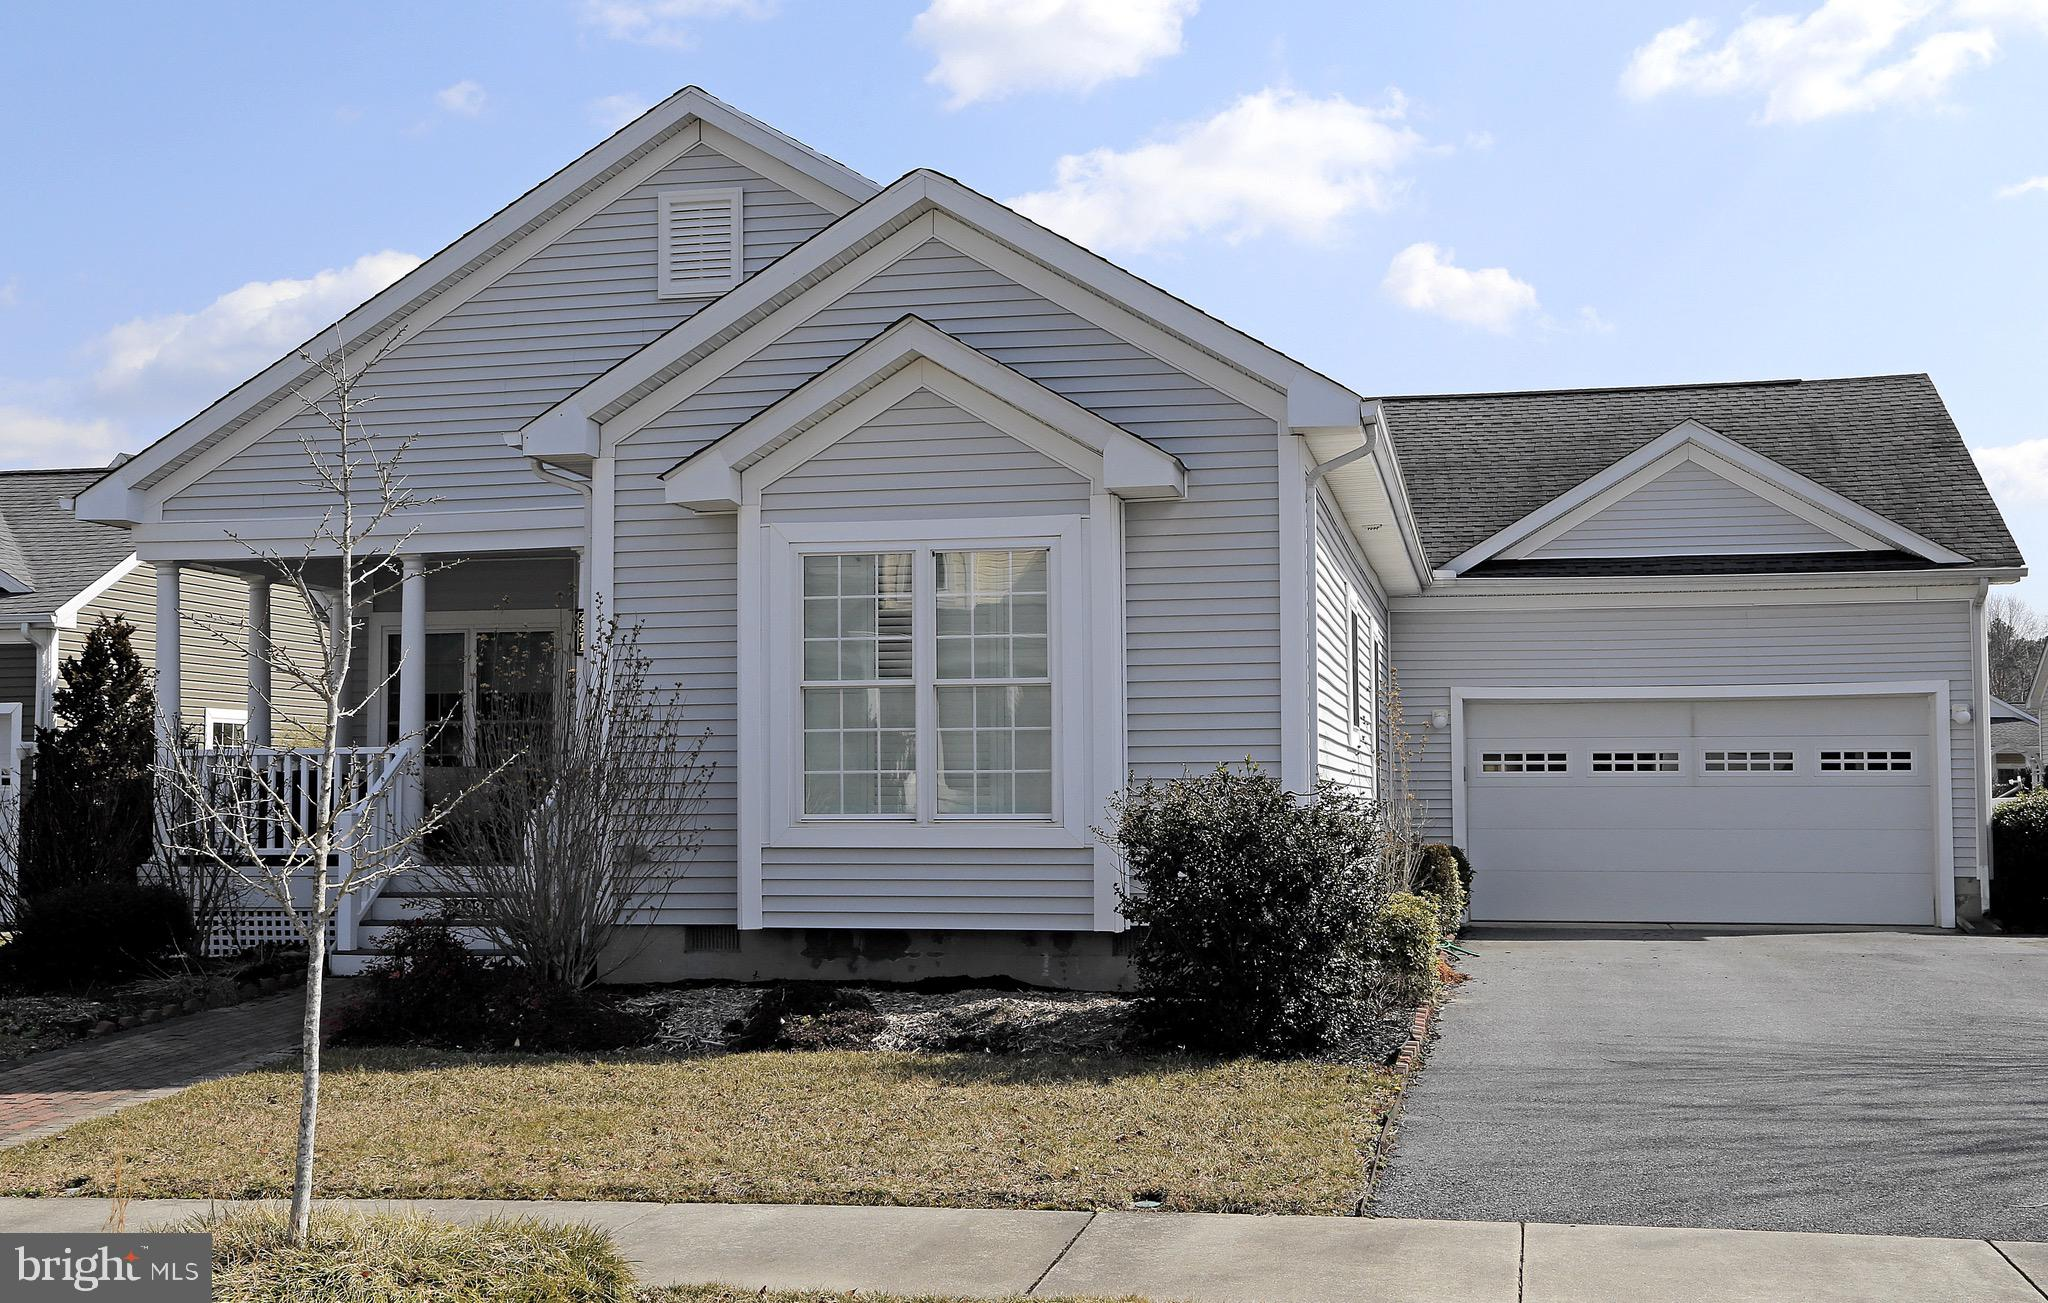 Ready to move in excellent condition house with attached a 2 car garage.  Easy and relaxed living in